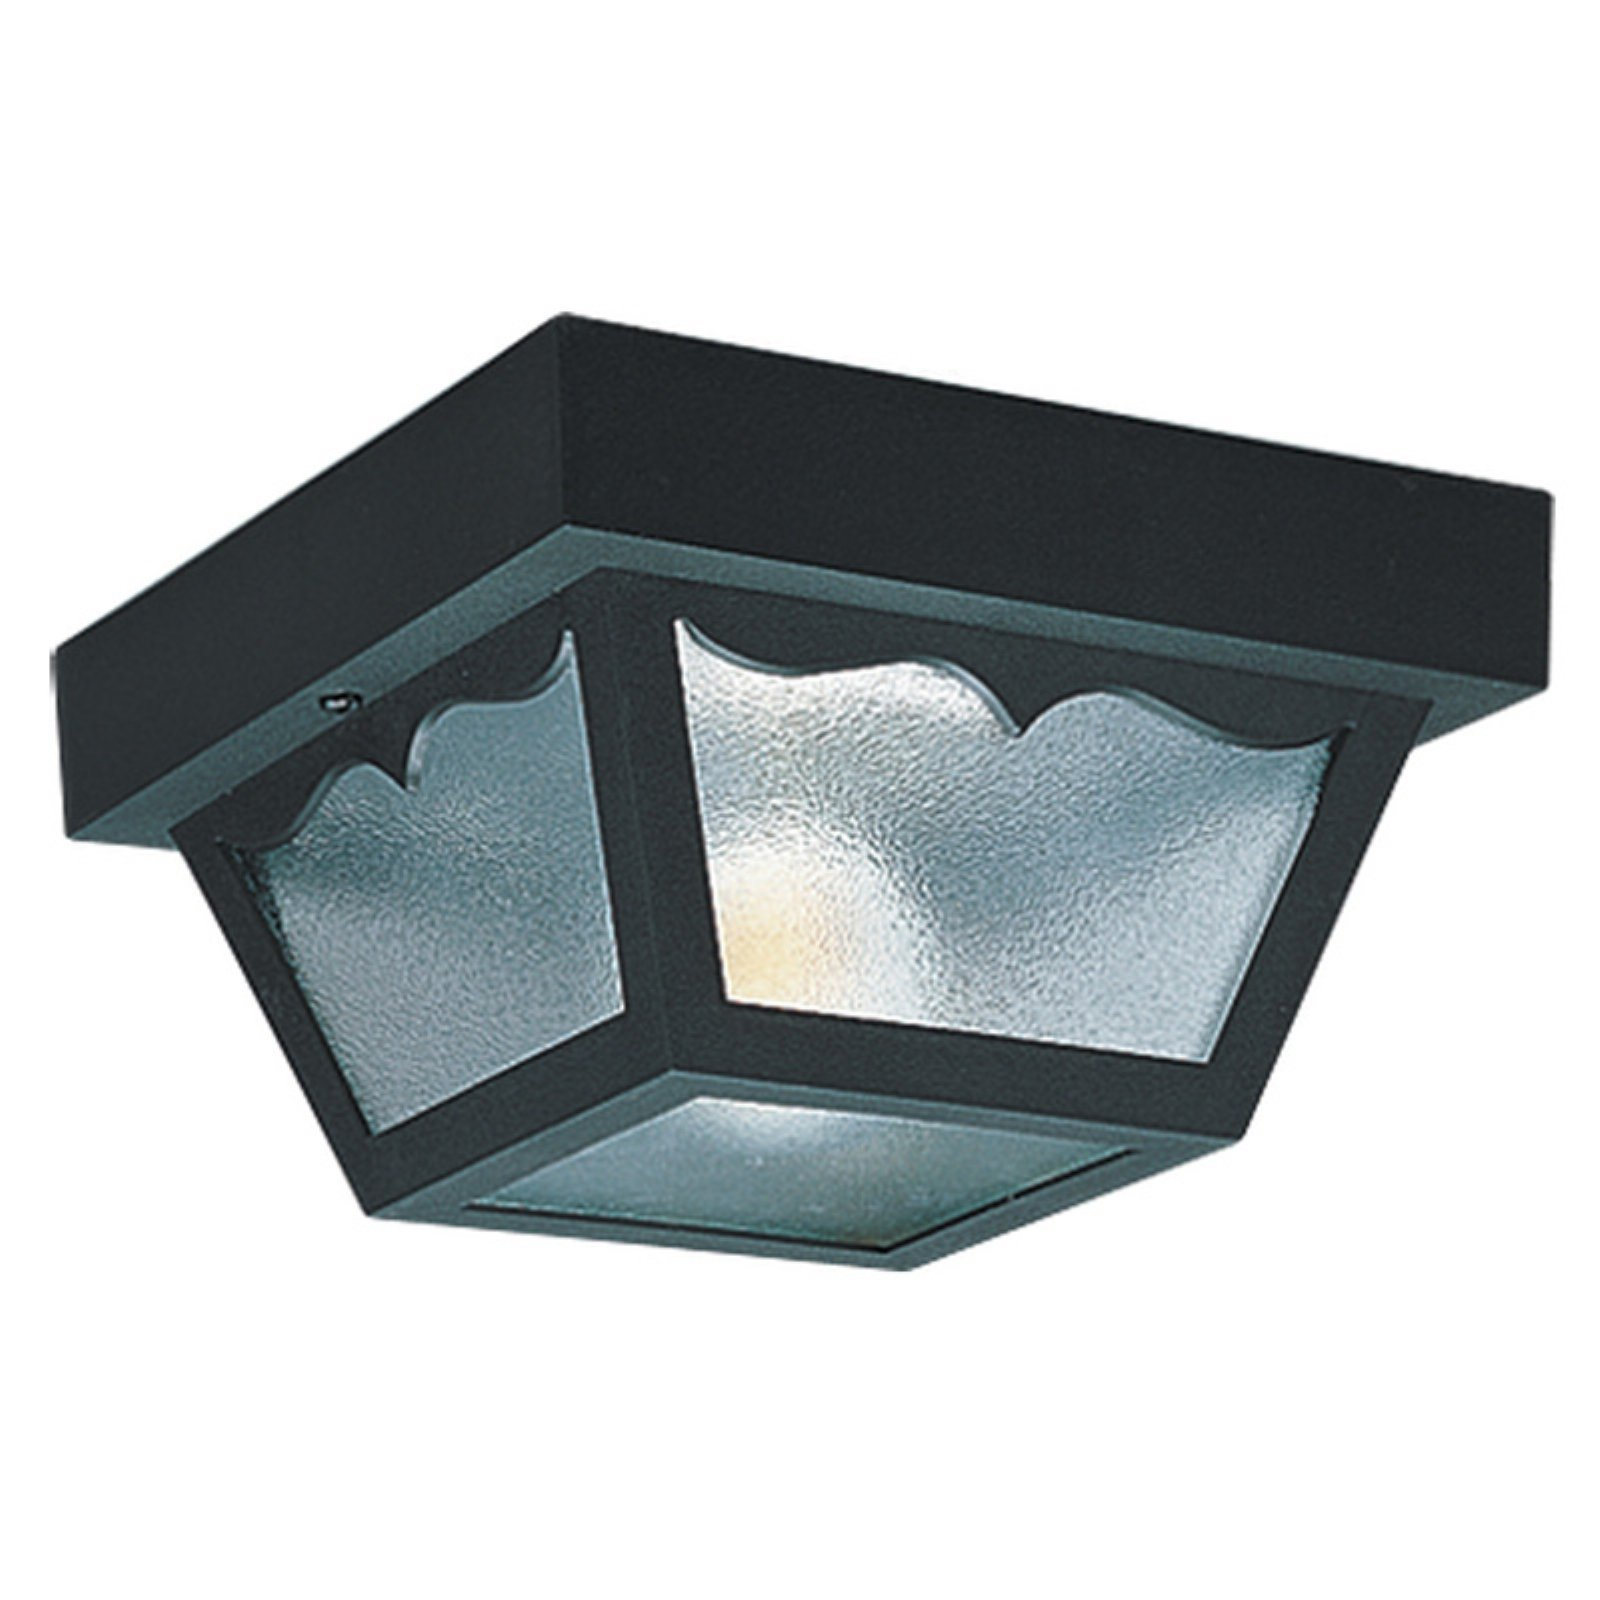 Sea Gull Outdoor 7569 Ceiling Light - 5.5H in. Black